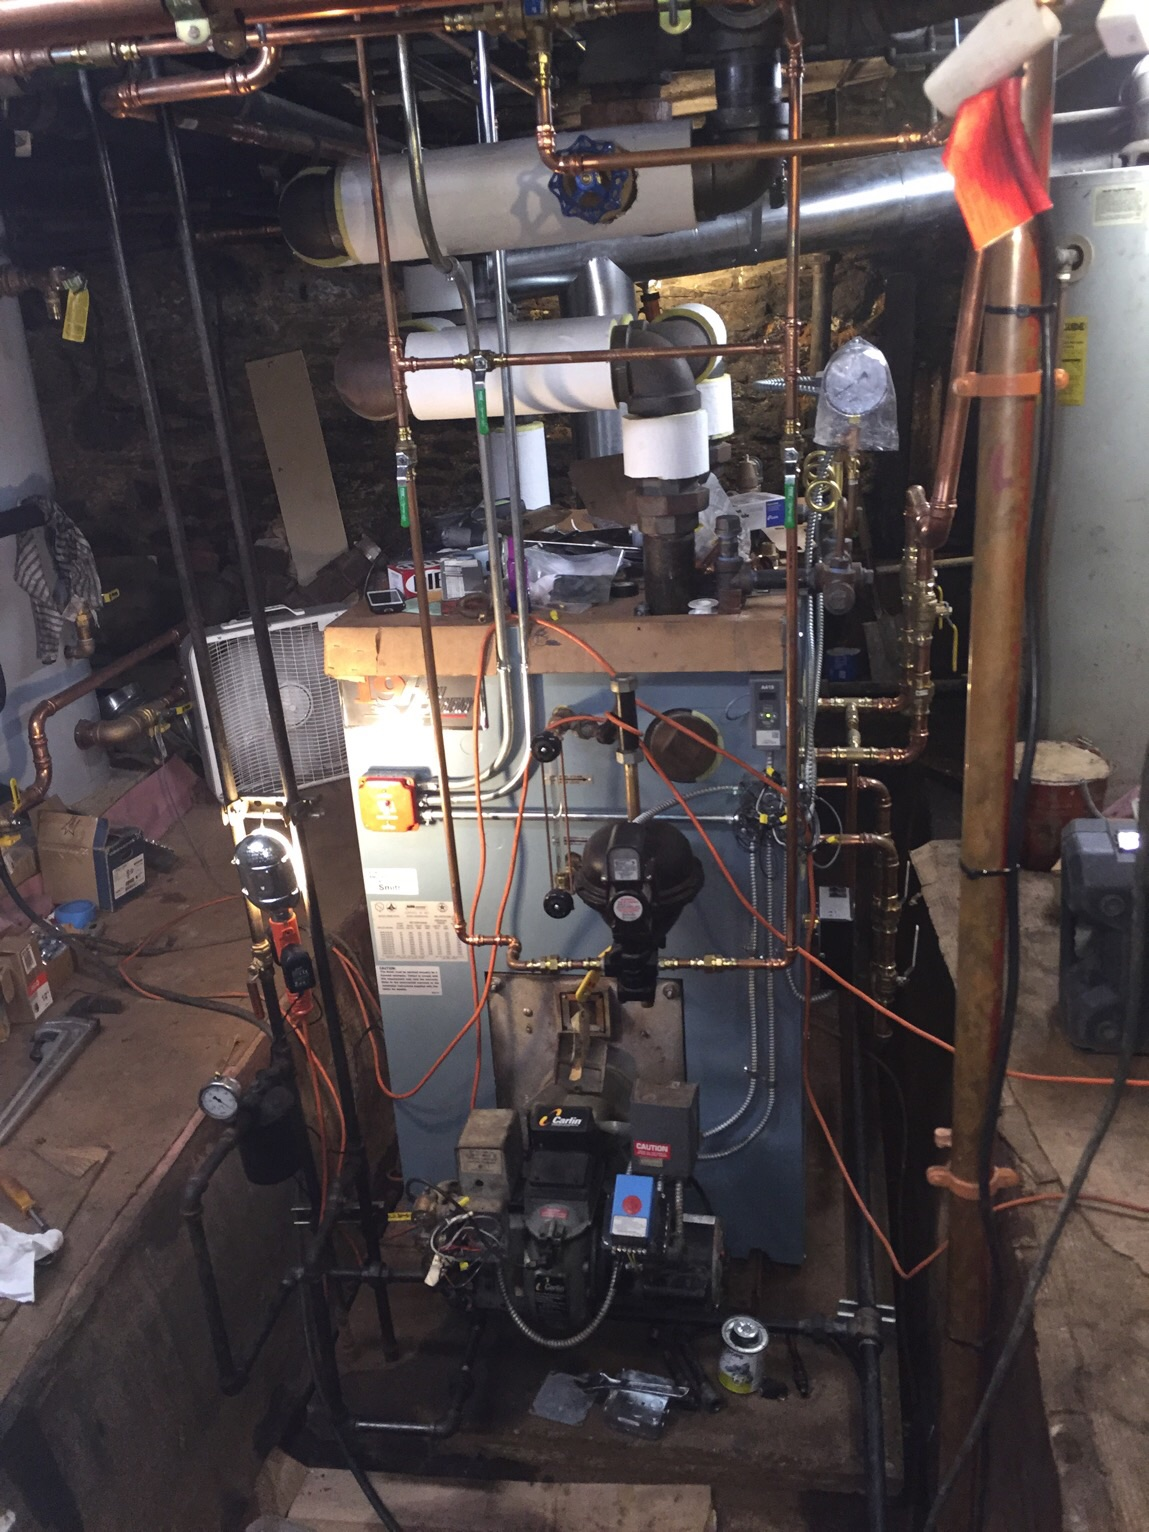 Almost done - new boiler operating but not complete